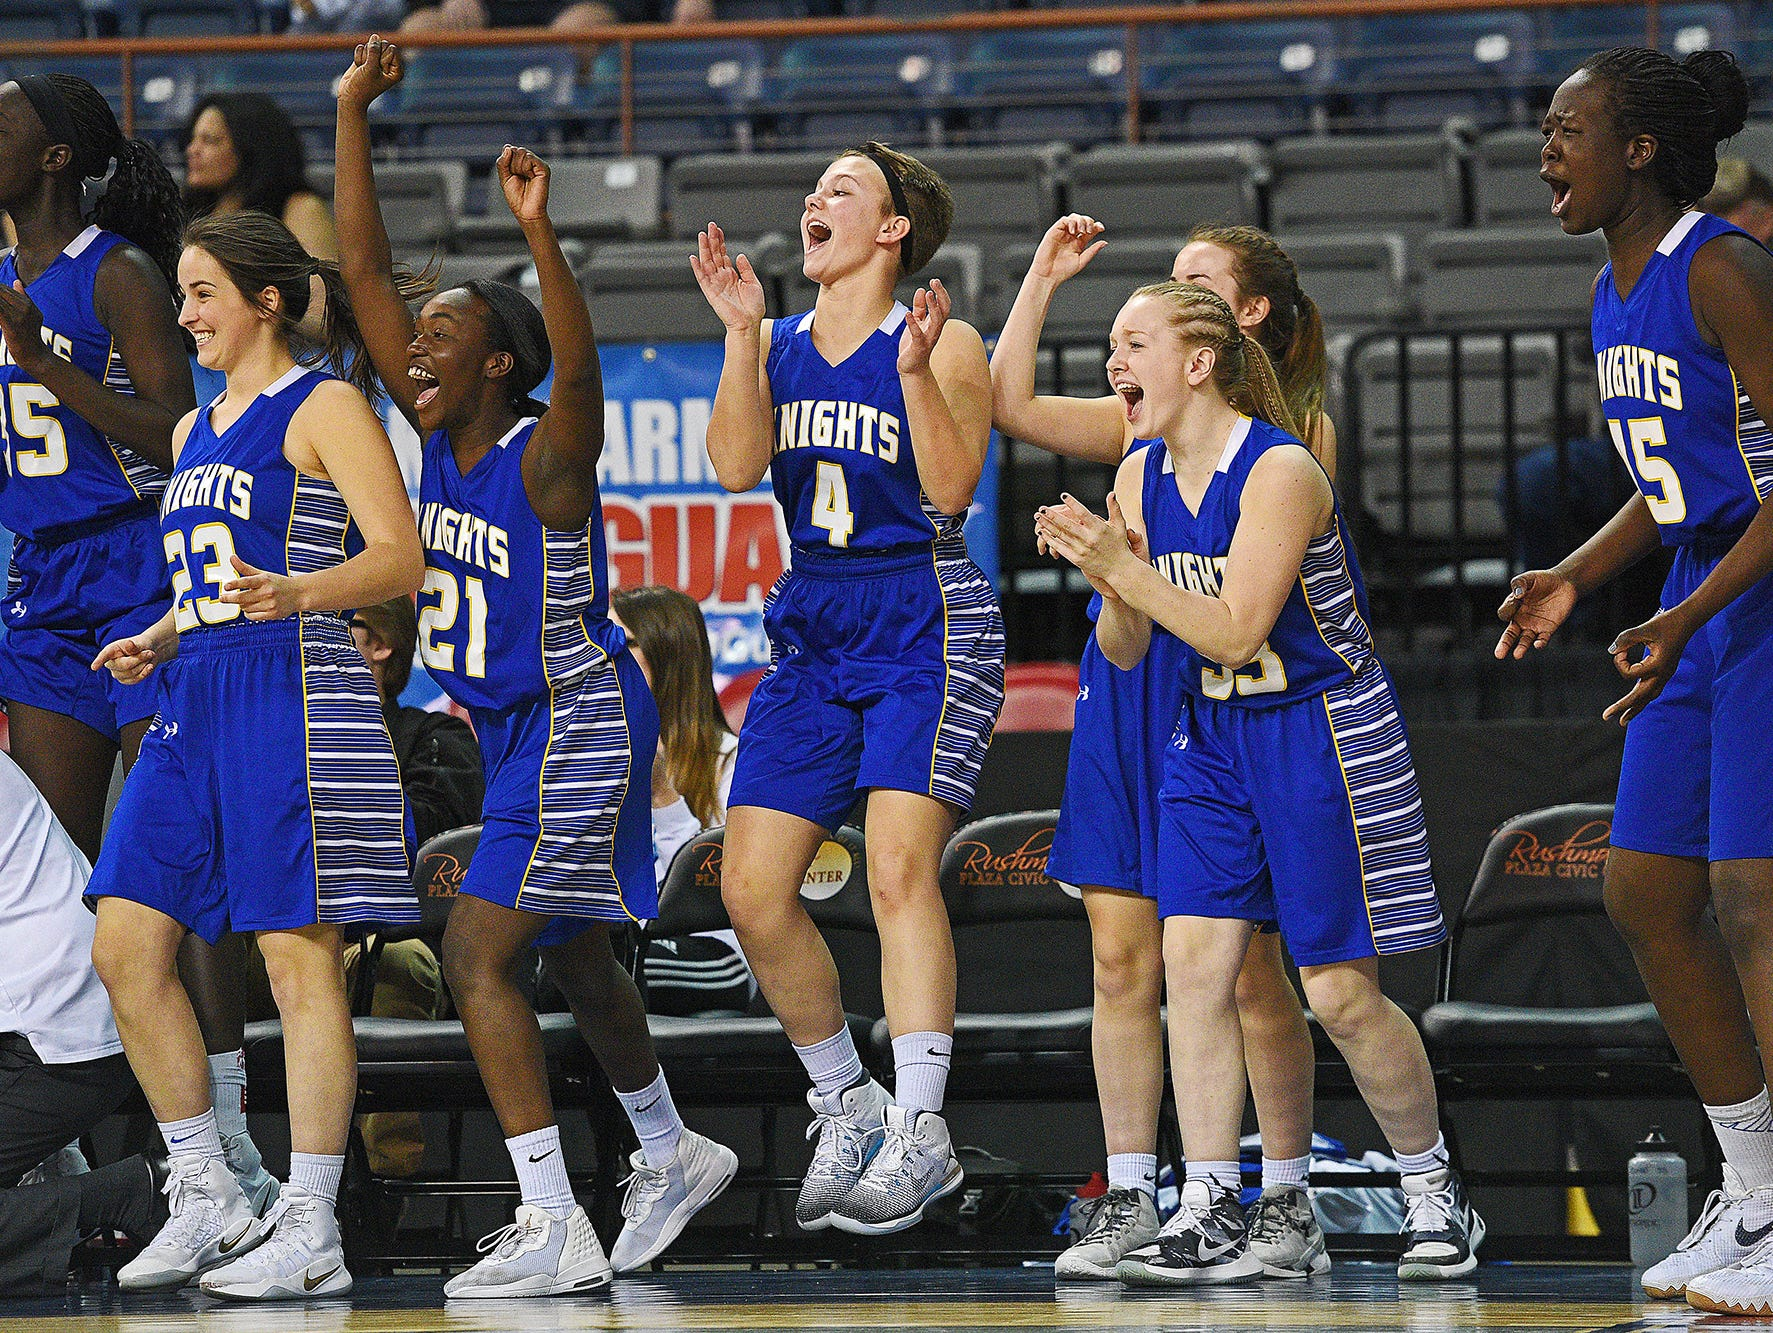 O'Gorman players react from the bench after a teammate scored during a 2017 SDHSAA Class AA State Girls Basketball quarterfinal game against Roosevelt Thursday, March 16, 2017, at Rushmore Plaza Civic Center in Rapid City. O'Gorman beat Roosevelt 37-33.